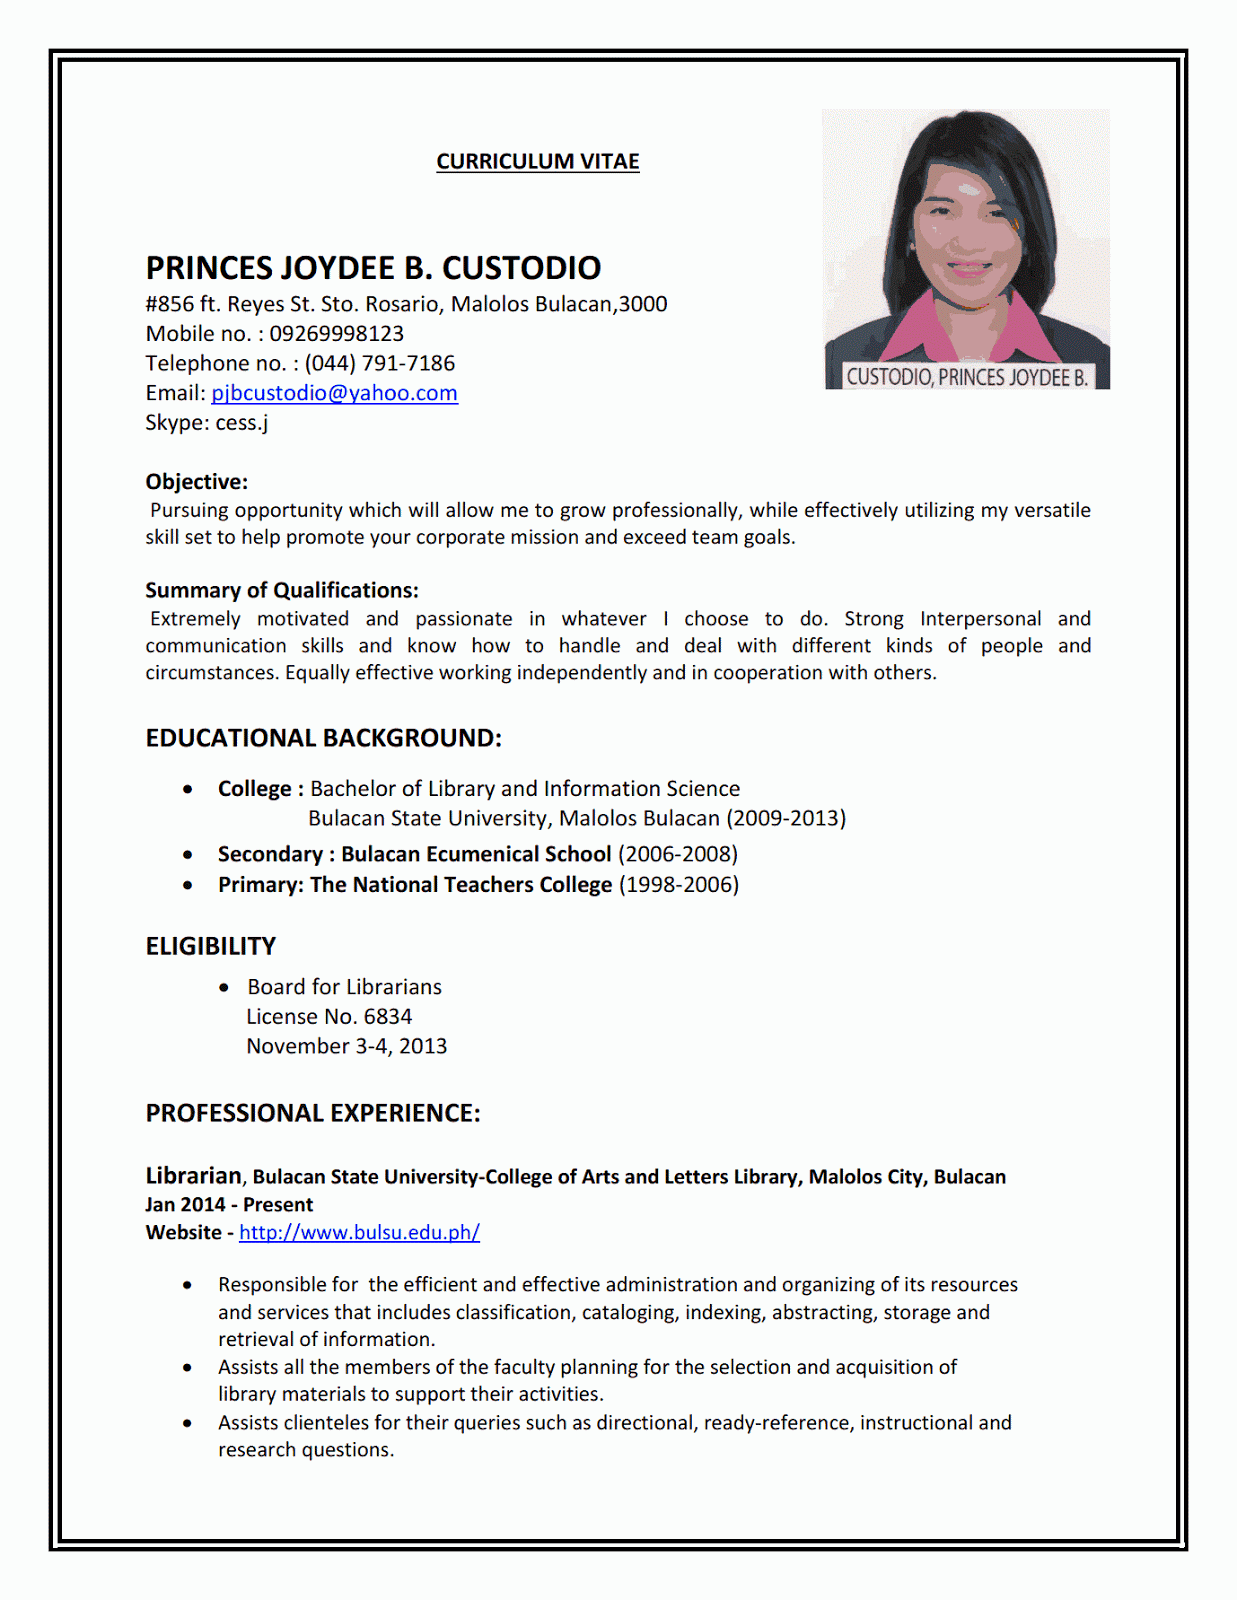 Resume Sample First Job | Sample Resumes | Indian music | Pinterest ...